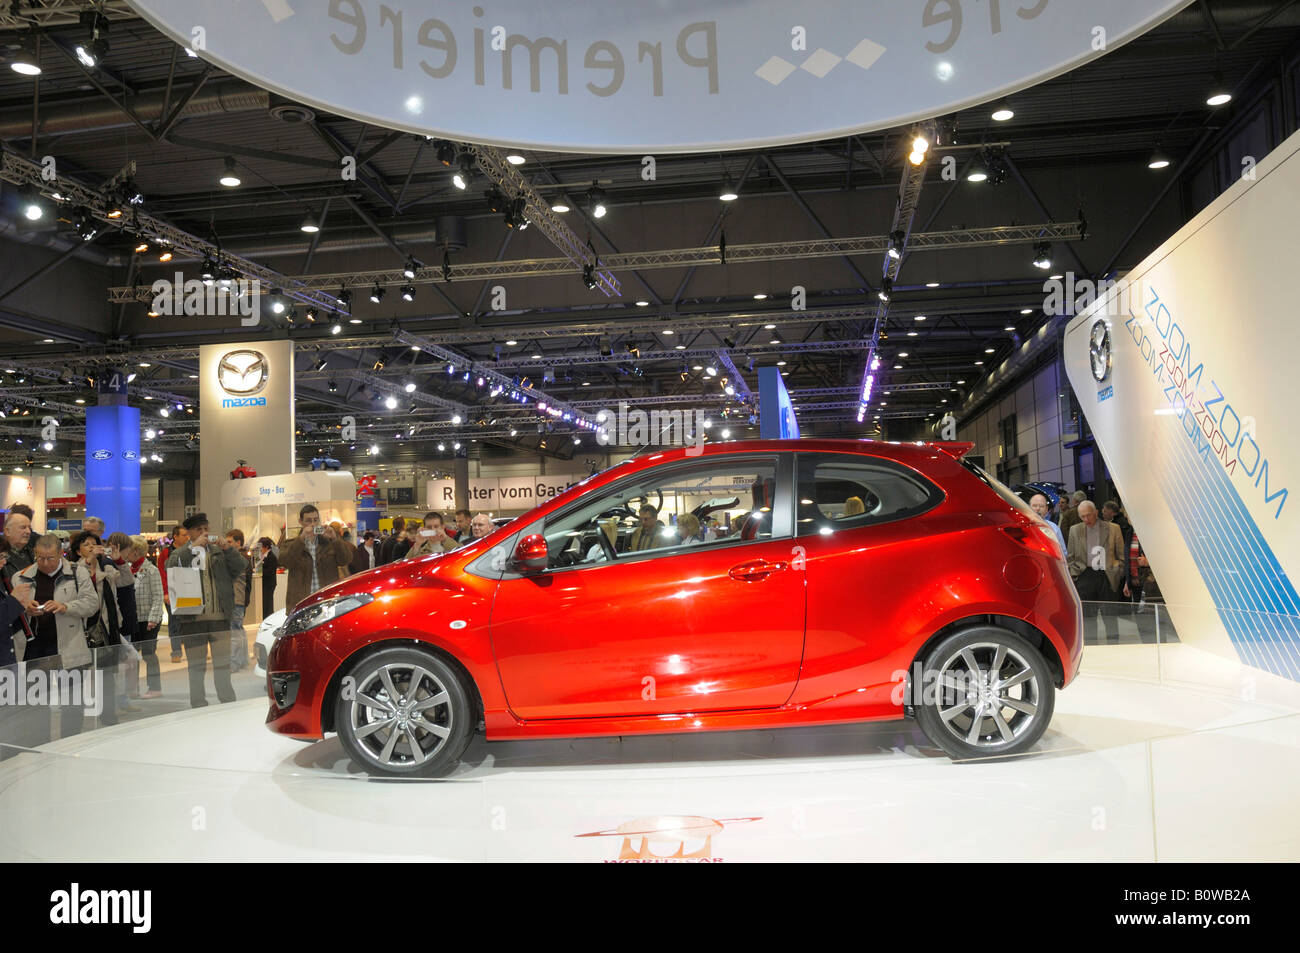 Stand d'information Mazda, Mazda 2, AMI Automobil International, International Auto Show, Leipzig, Saxe, Allemagne Photo Stock